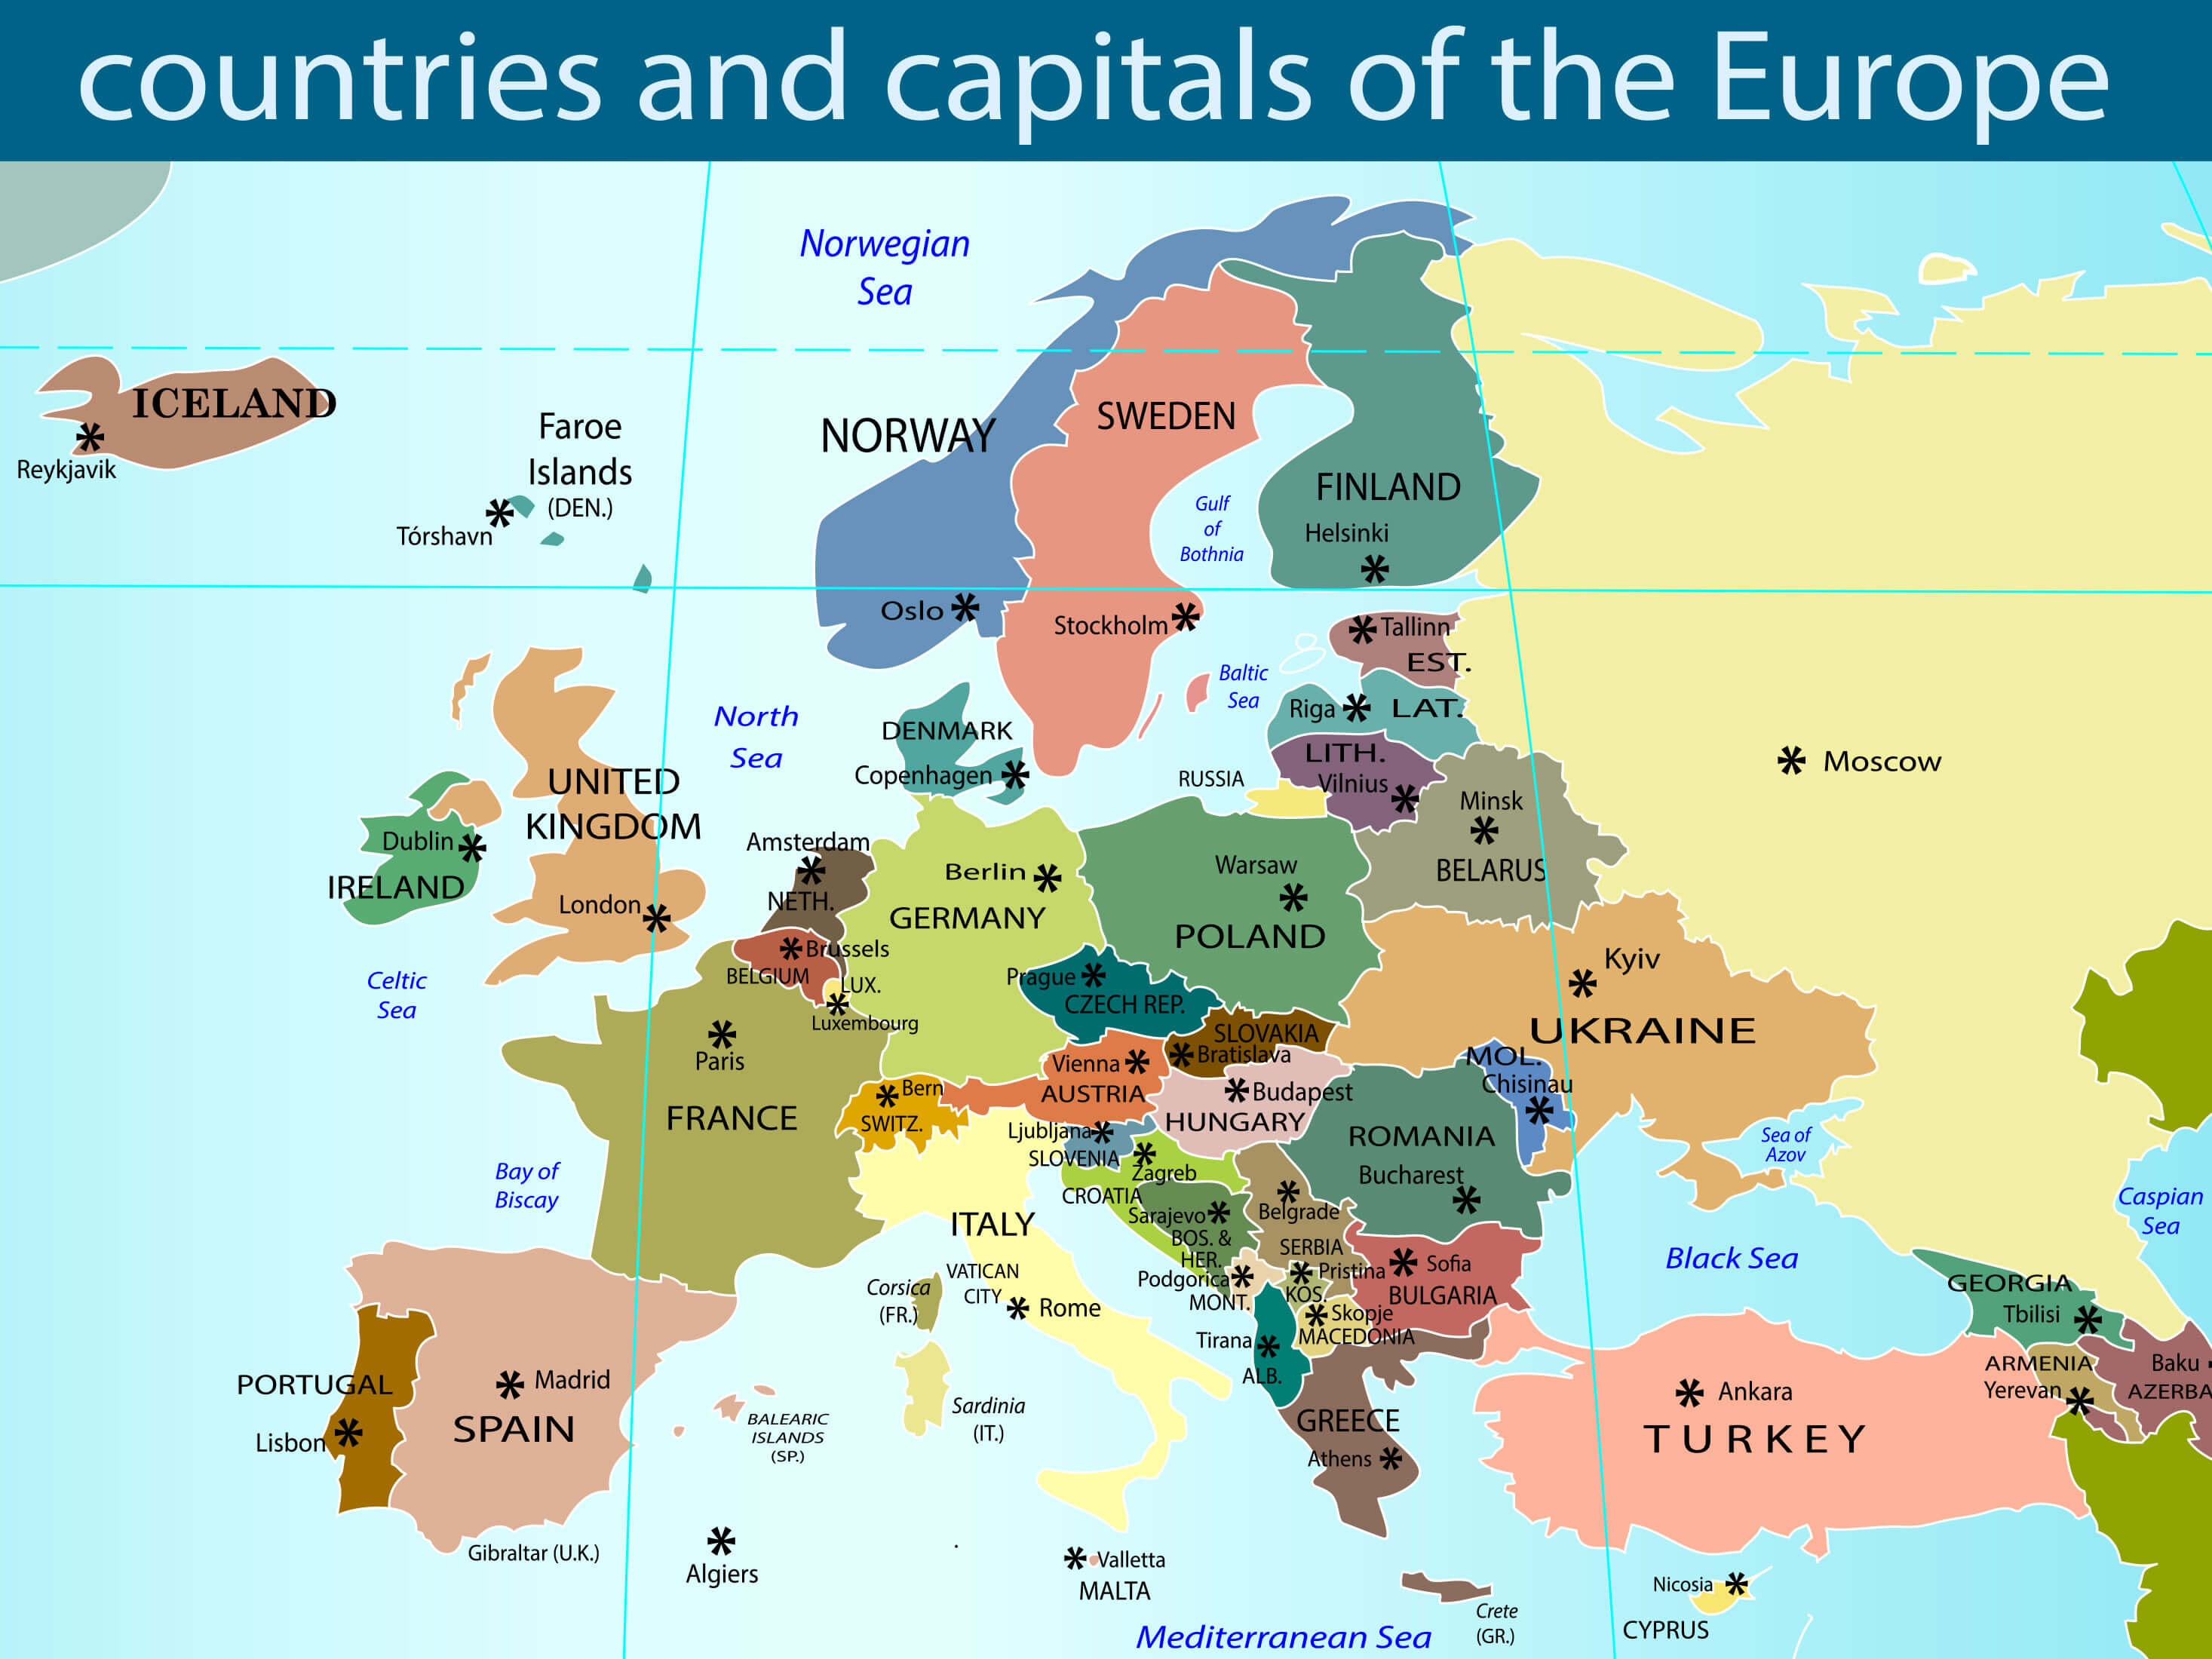 Countries Capitals of the Europe Map